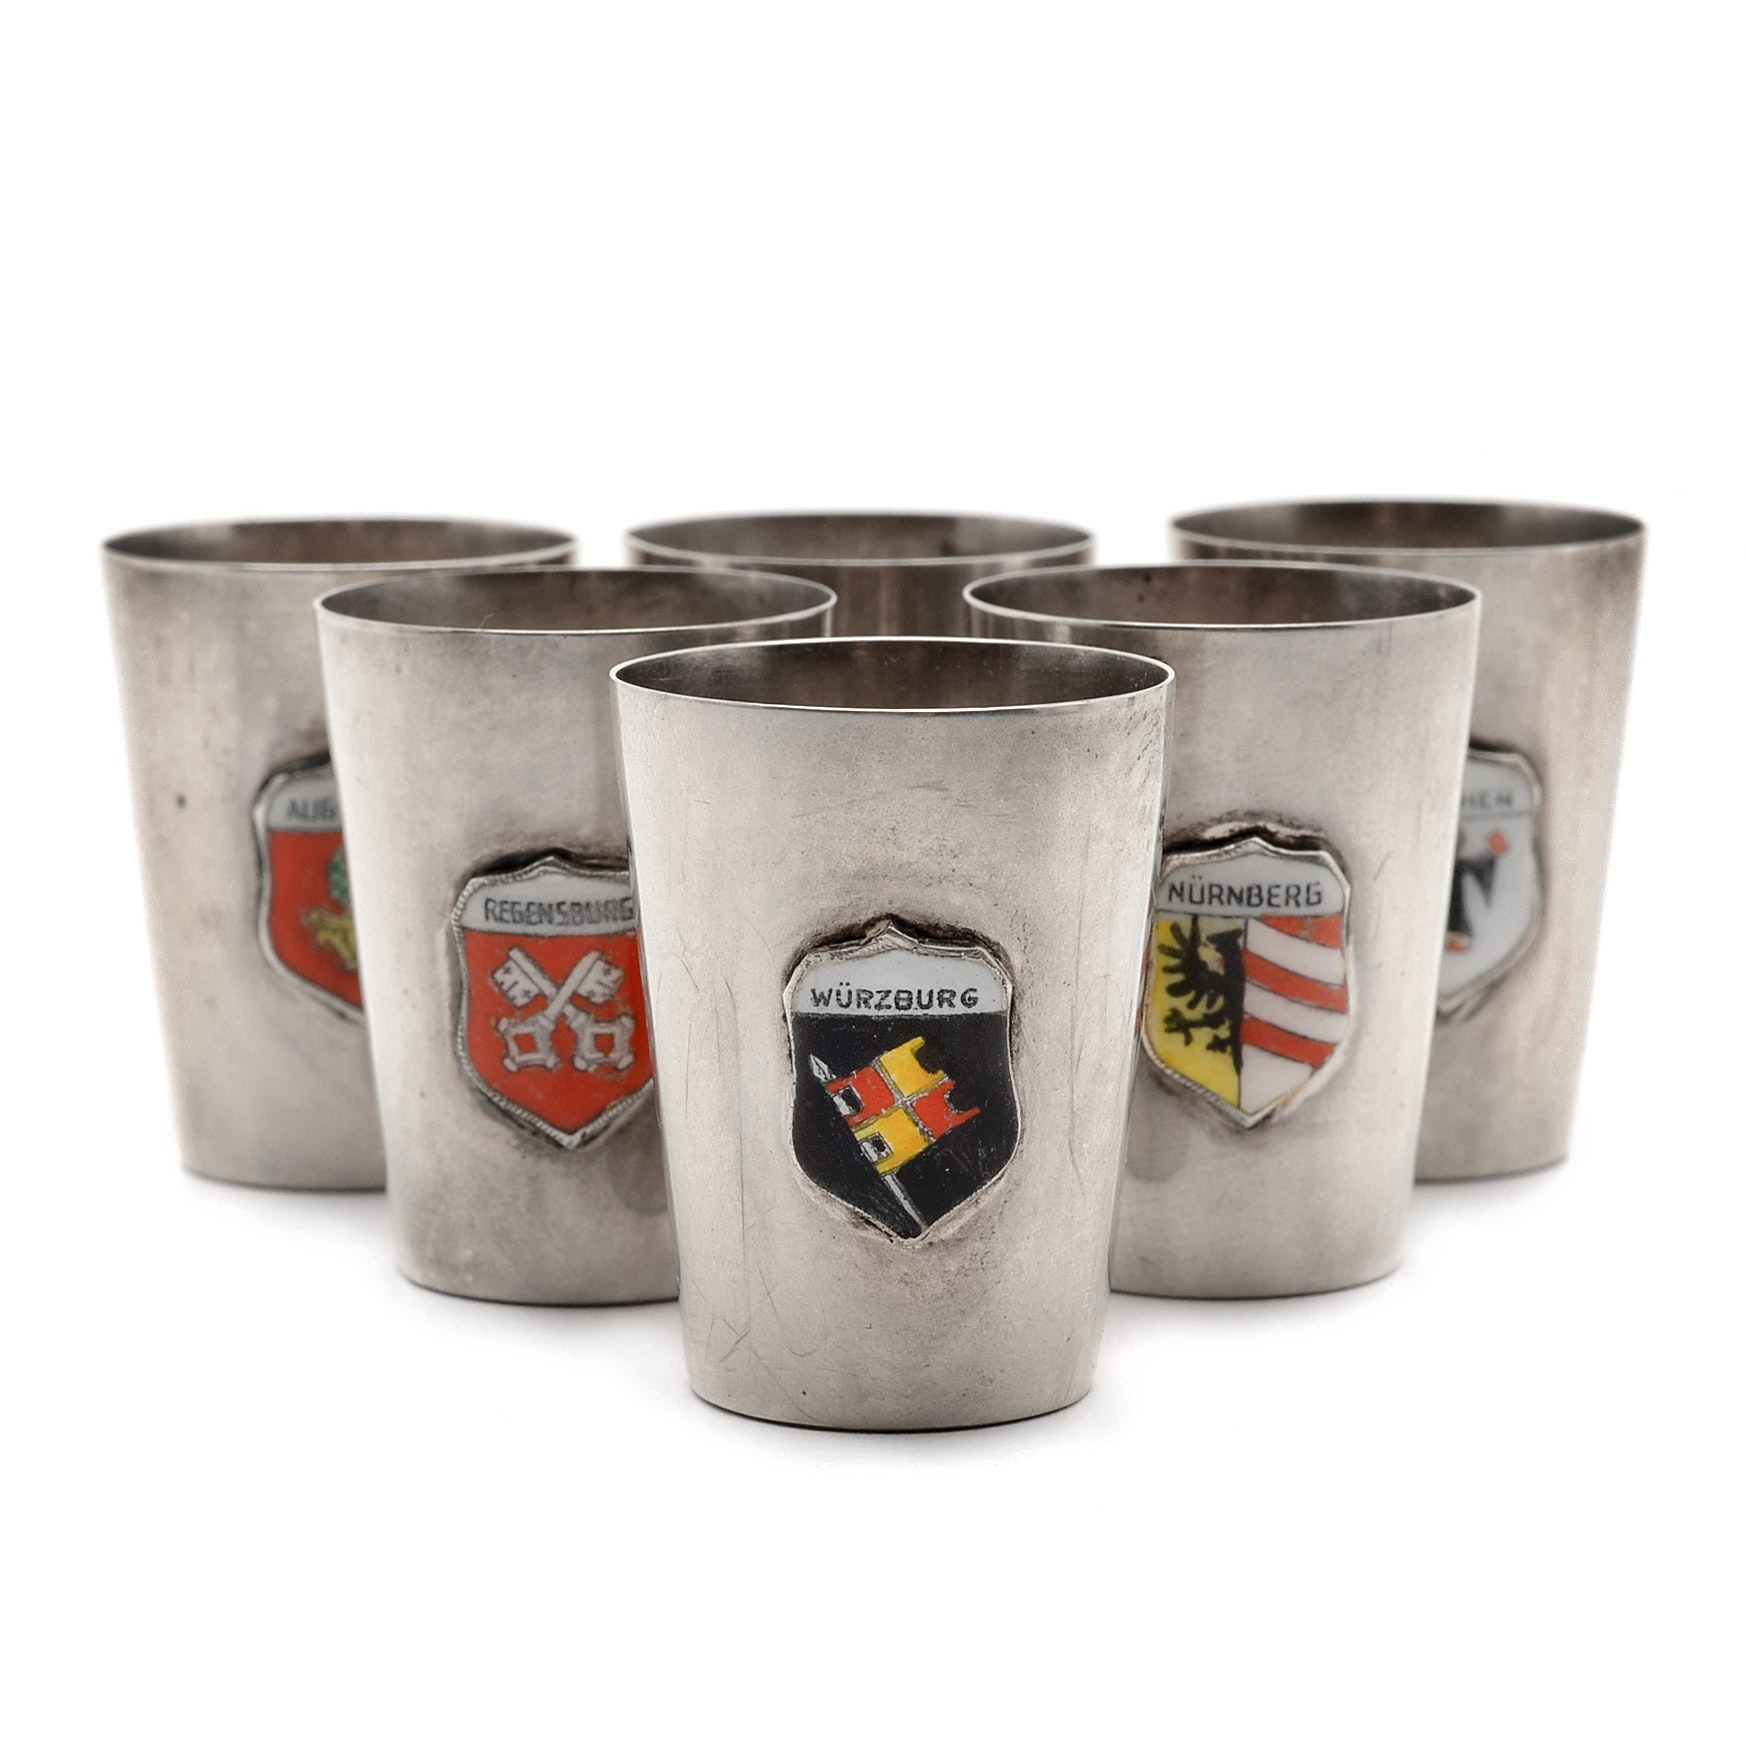 Six Sterling Silver and Enamel Souvenir Shot Glasses From Germany